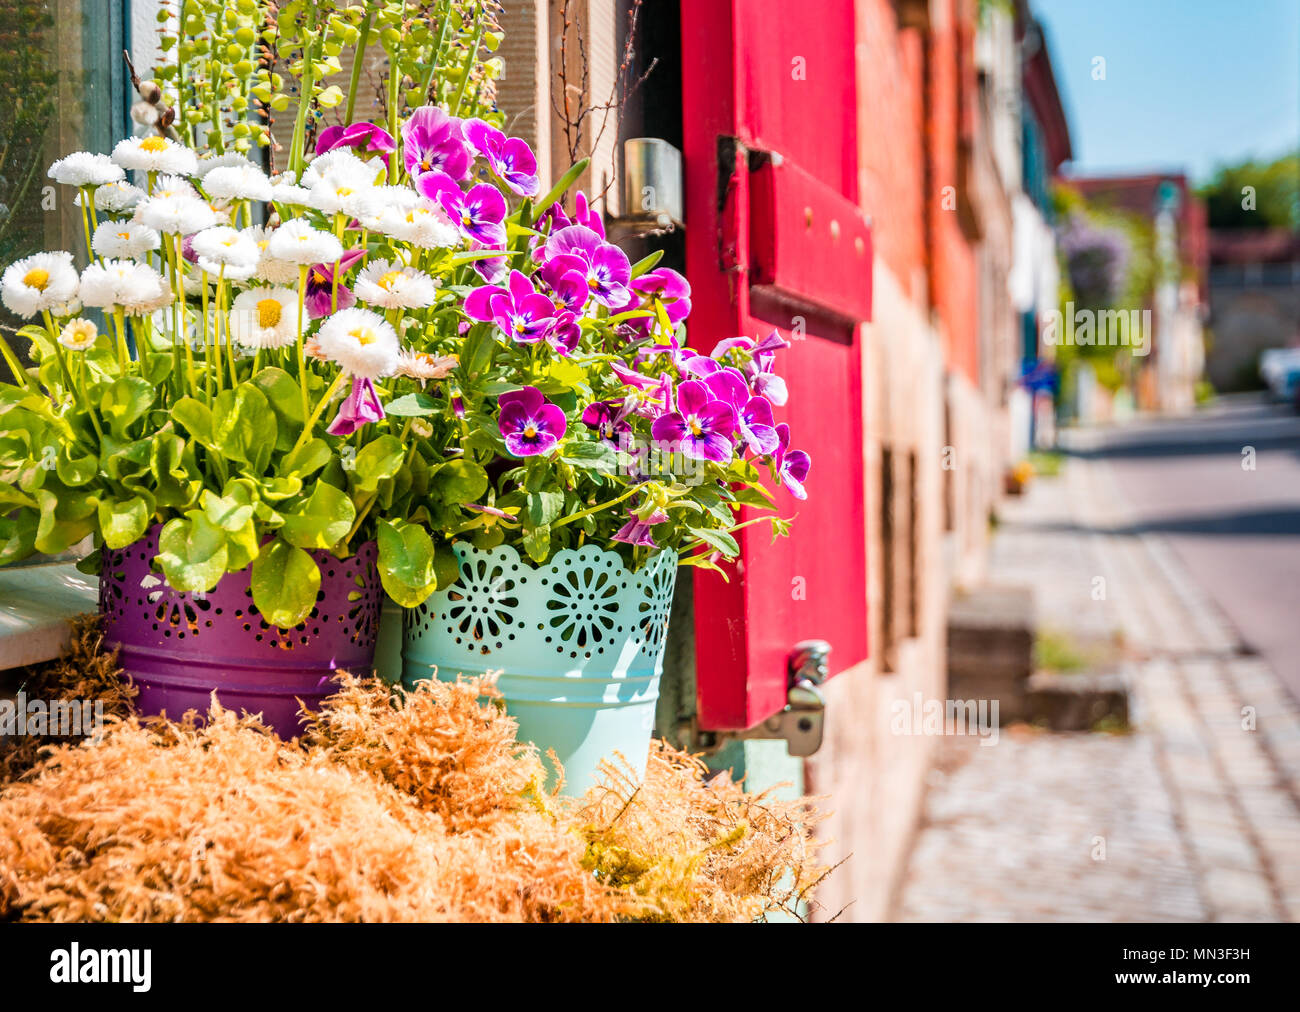 Scenic summer in the Old Town town in Rothenburg ob der Tauber, Bavaria, Germany Stock Photo